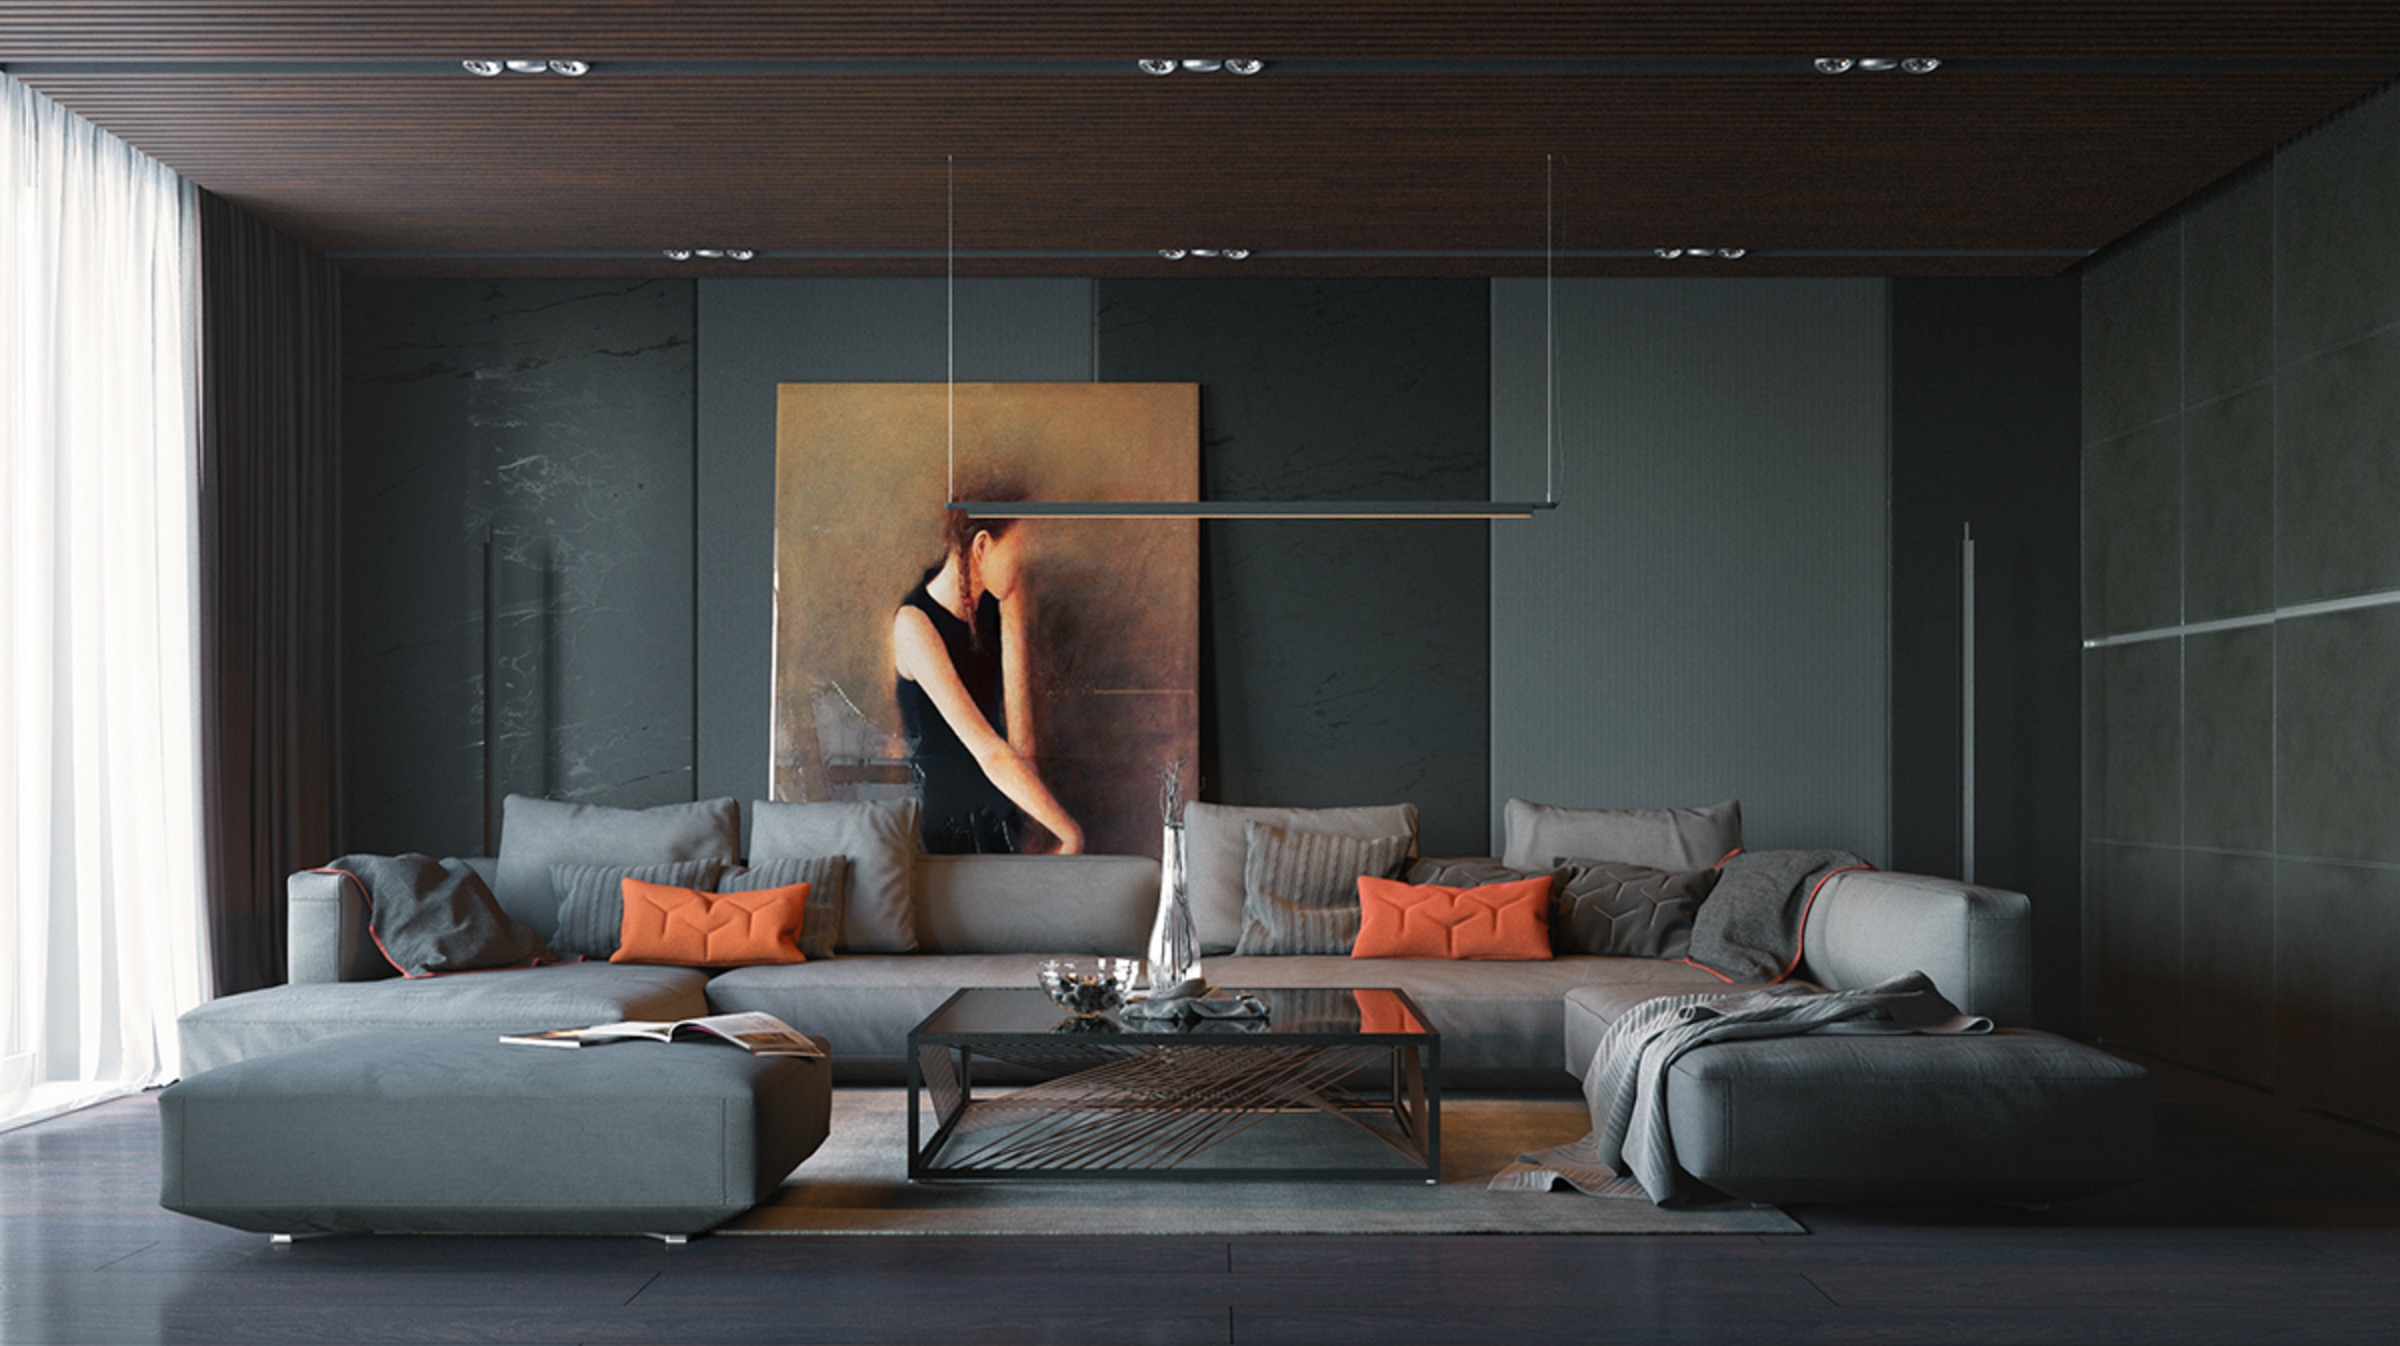 Using substantial artwork within a stylish interior